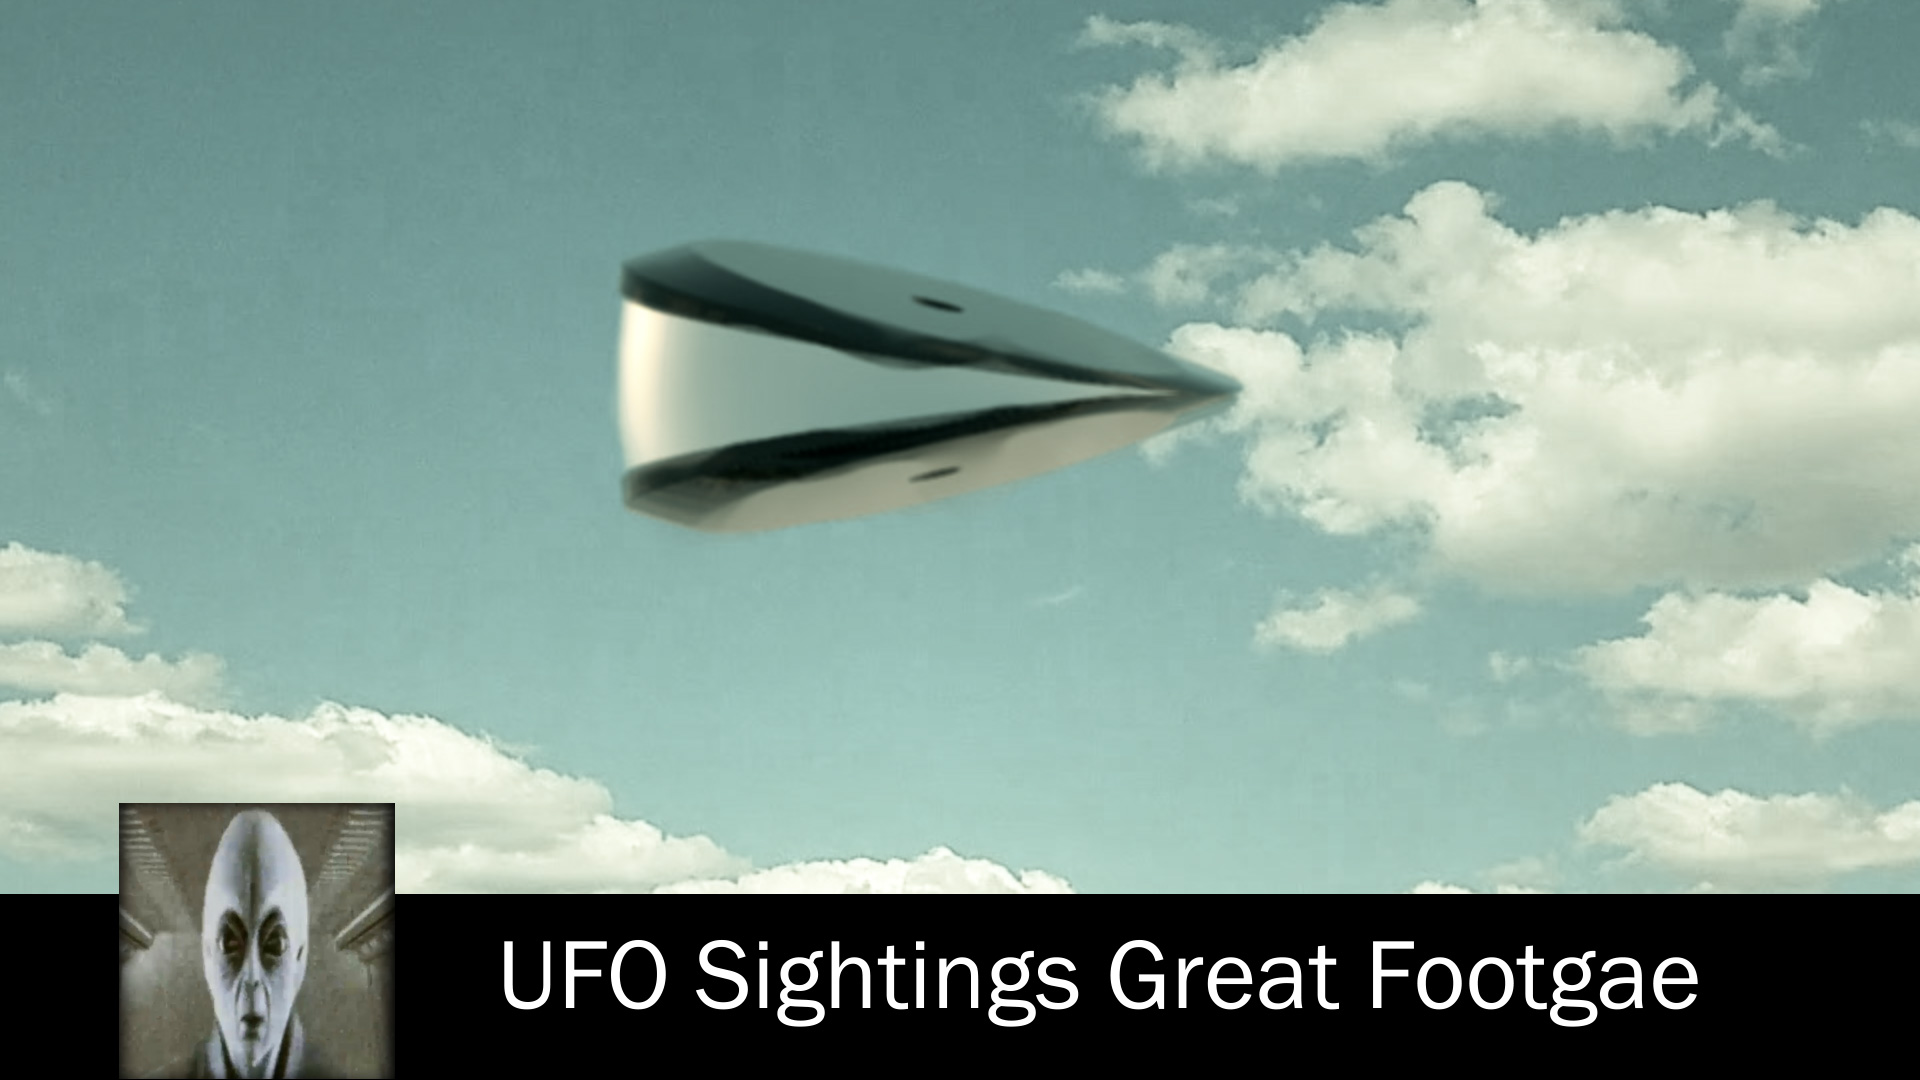 UFO Sightings Great Footage June 6th 2017